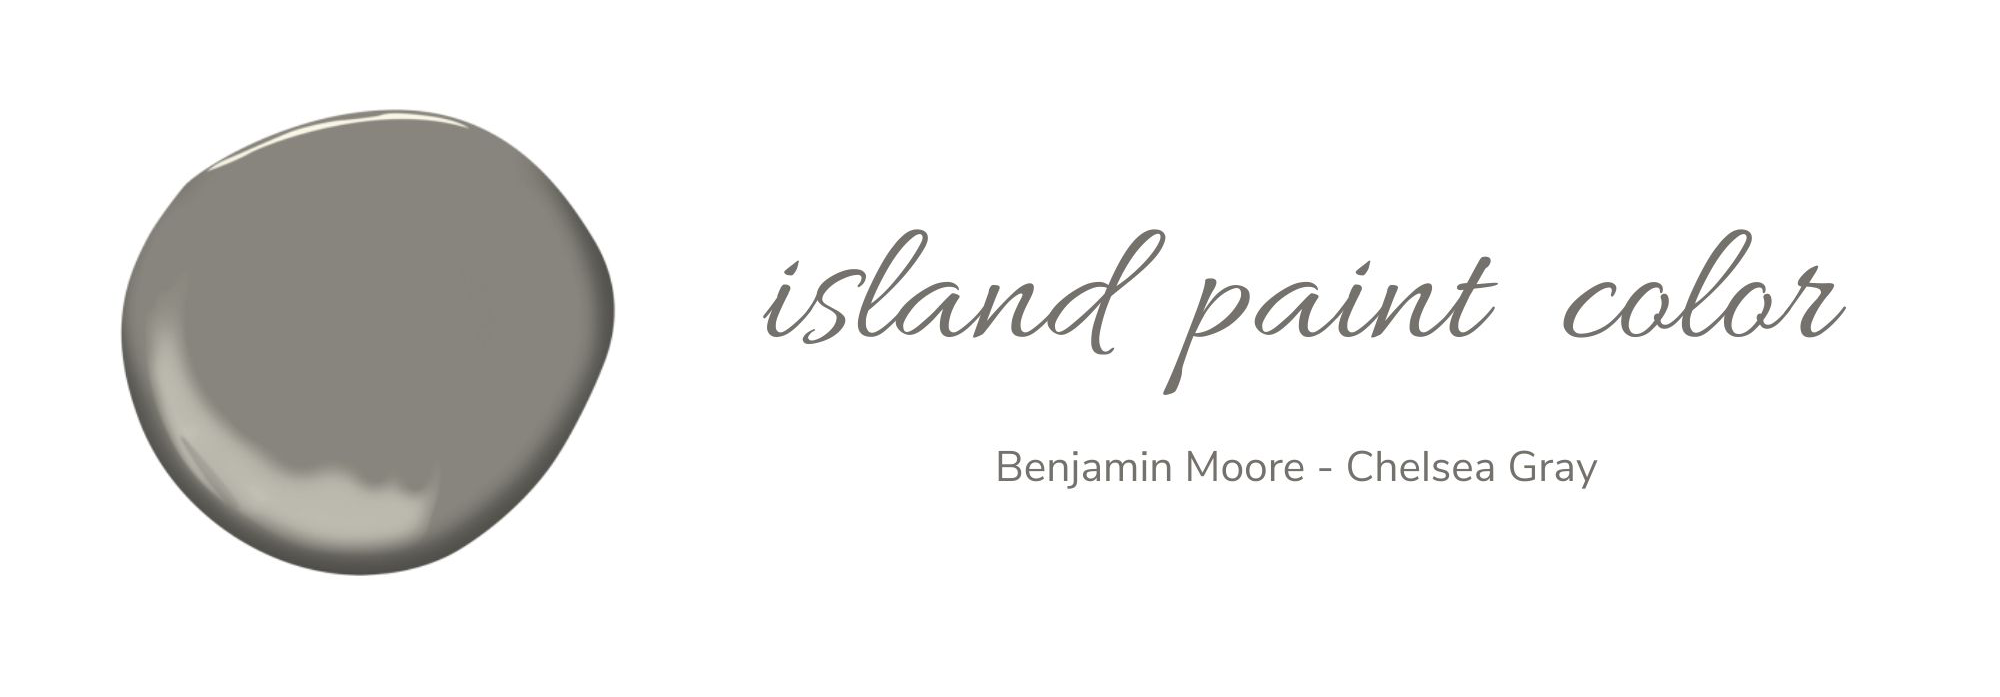 Benjamin Moore - Chelsea Gray Island Paint Color